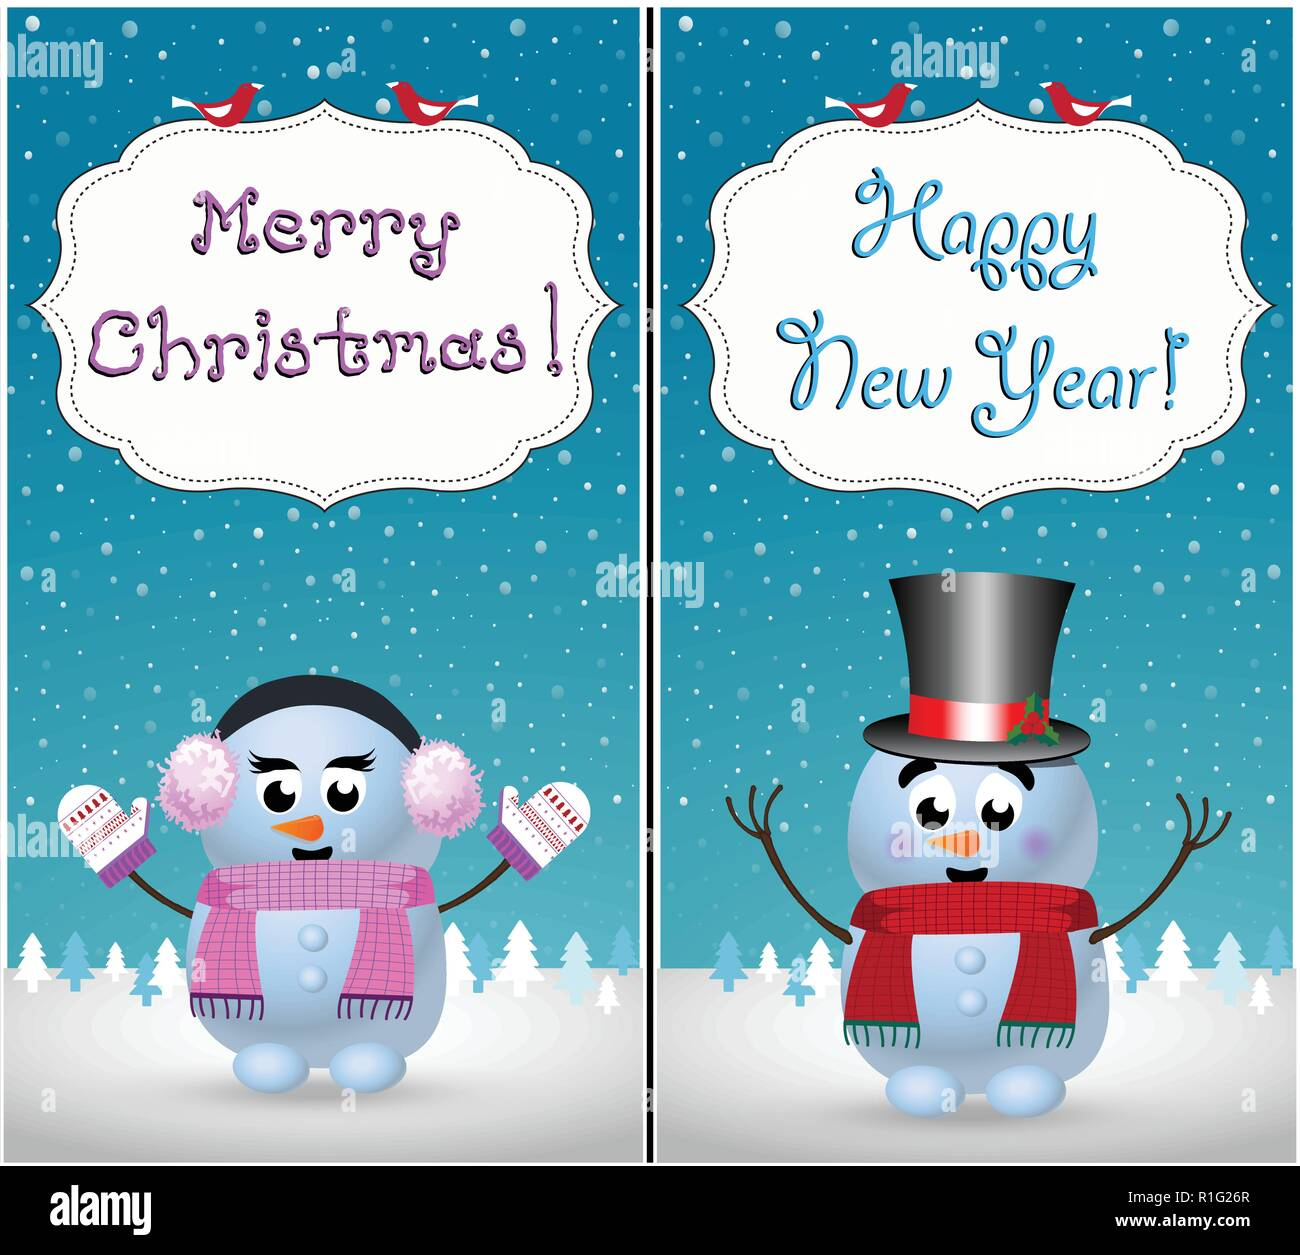 merry christmas and happy new year greeting cards set of cute little baby snowman and snowgirl on winter snowy landscape scene and hand drawn letterin